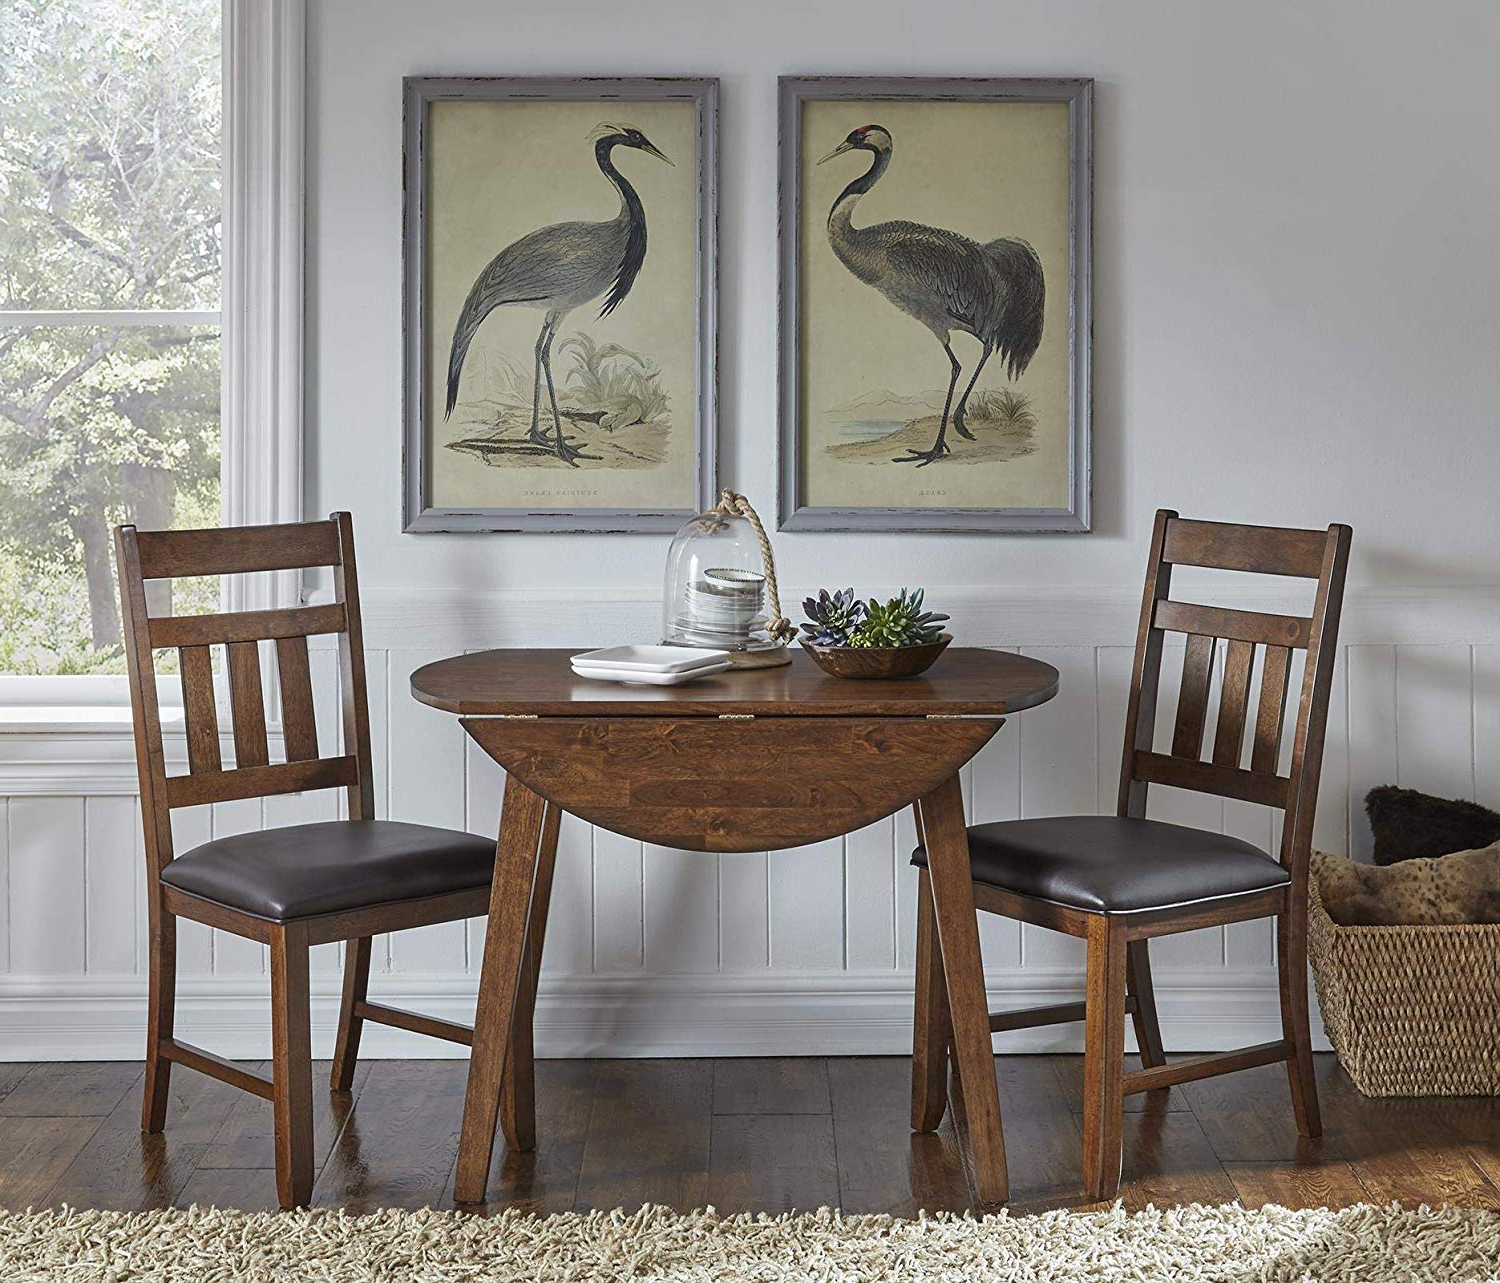 Amazon – A America Mason 42inch Round Dropleaf Table Pertaining To Well Known Transitional 4 Seating Drop Leaf Casual Dining Tables (View 11 of 30)